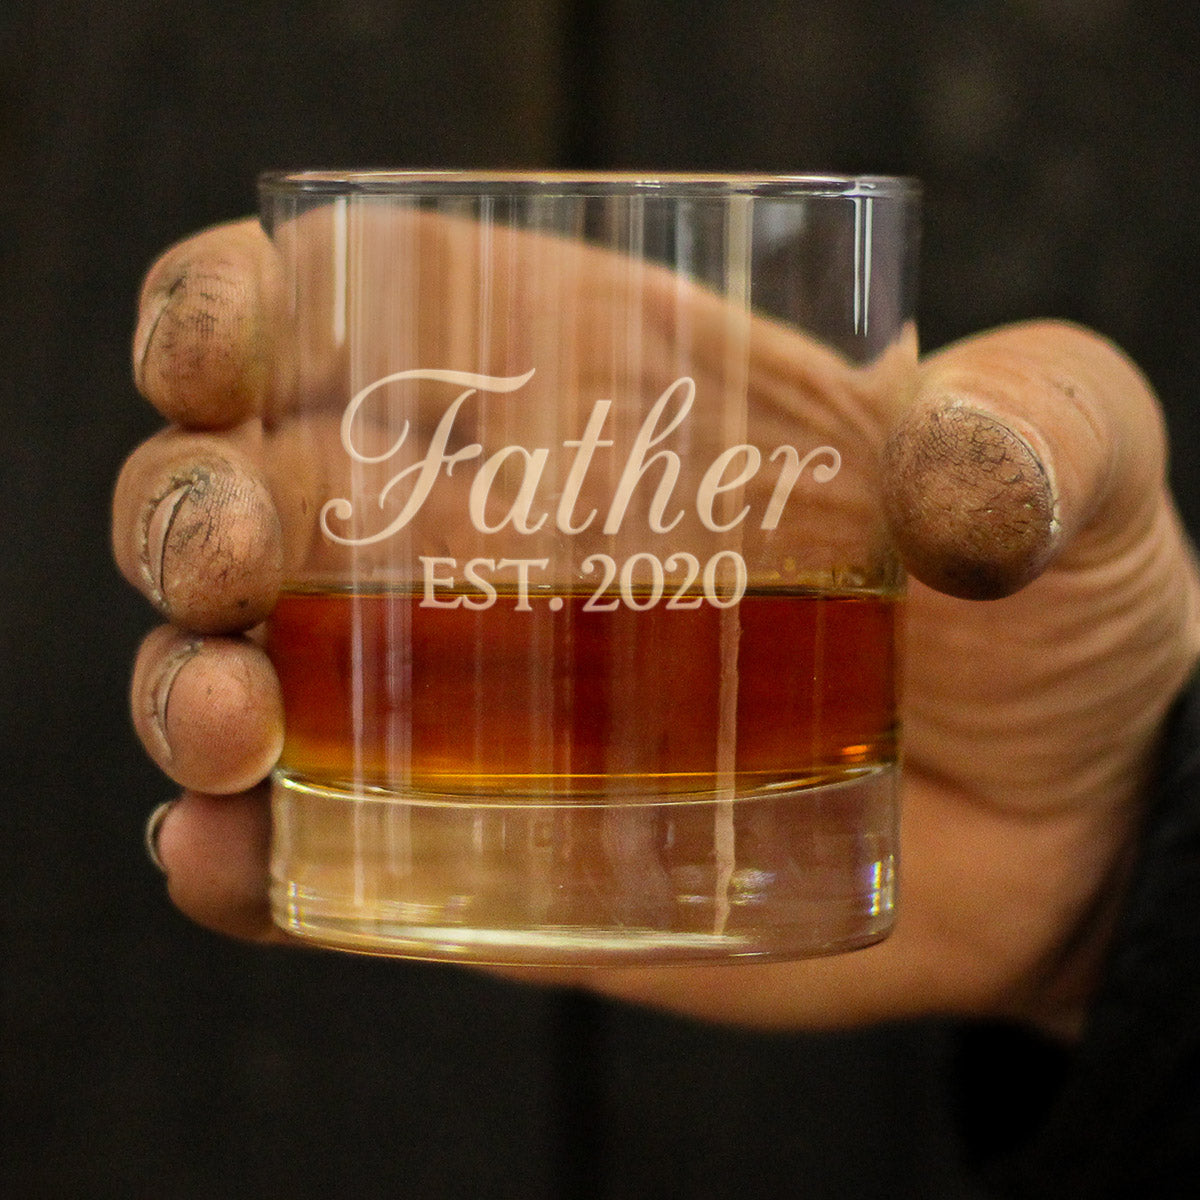 Father Est. 2020 - 10 Ounce Rocks Glass